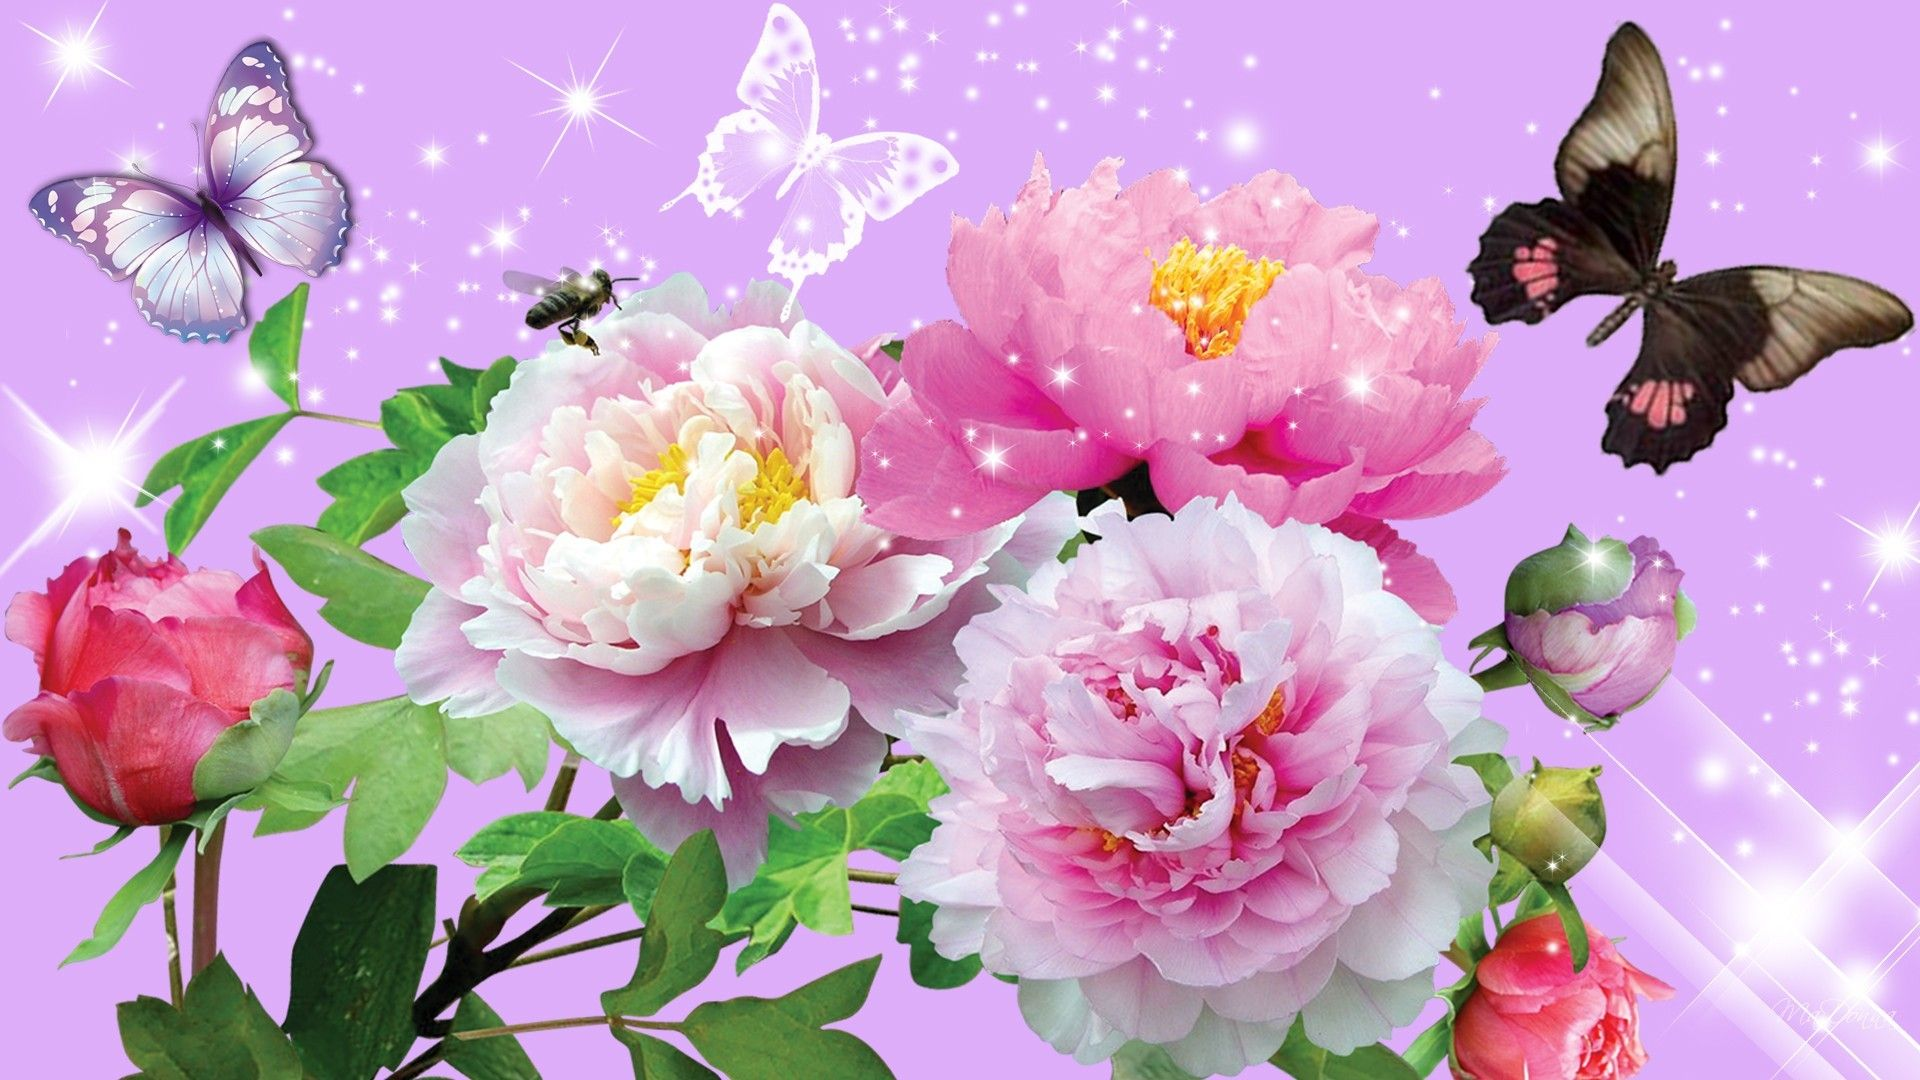 Beautiful flowers and butterflies vector background Free vector in ...